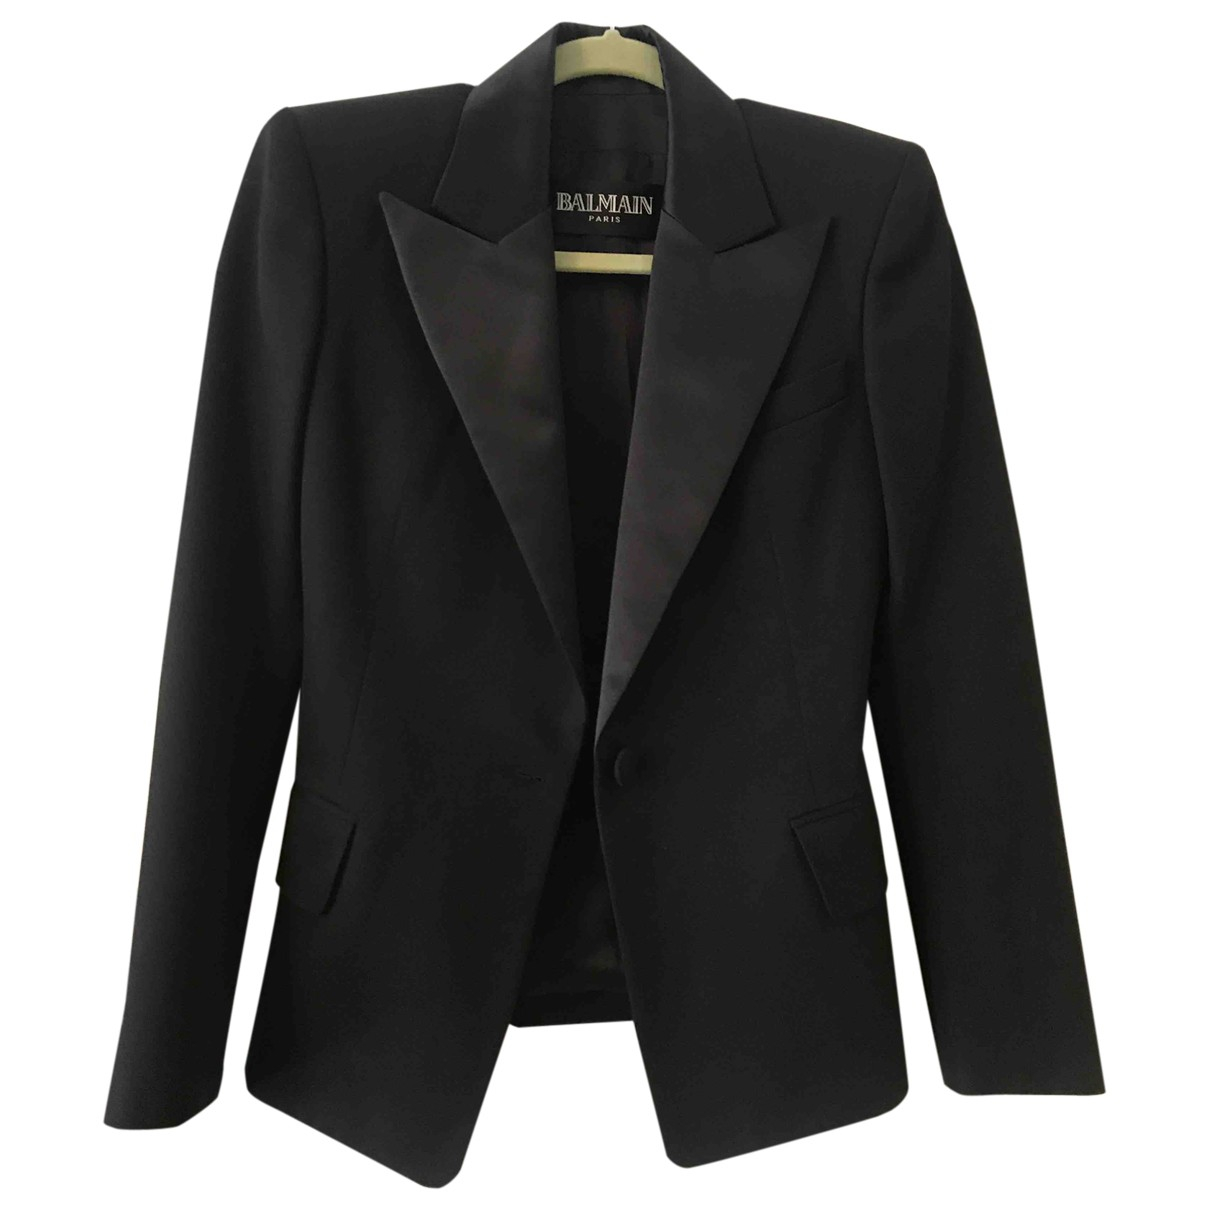 Balmain \N Black Wool jacket for Women 36 FR